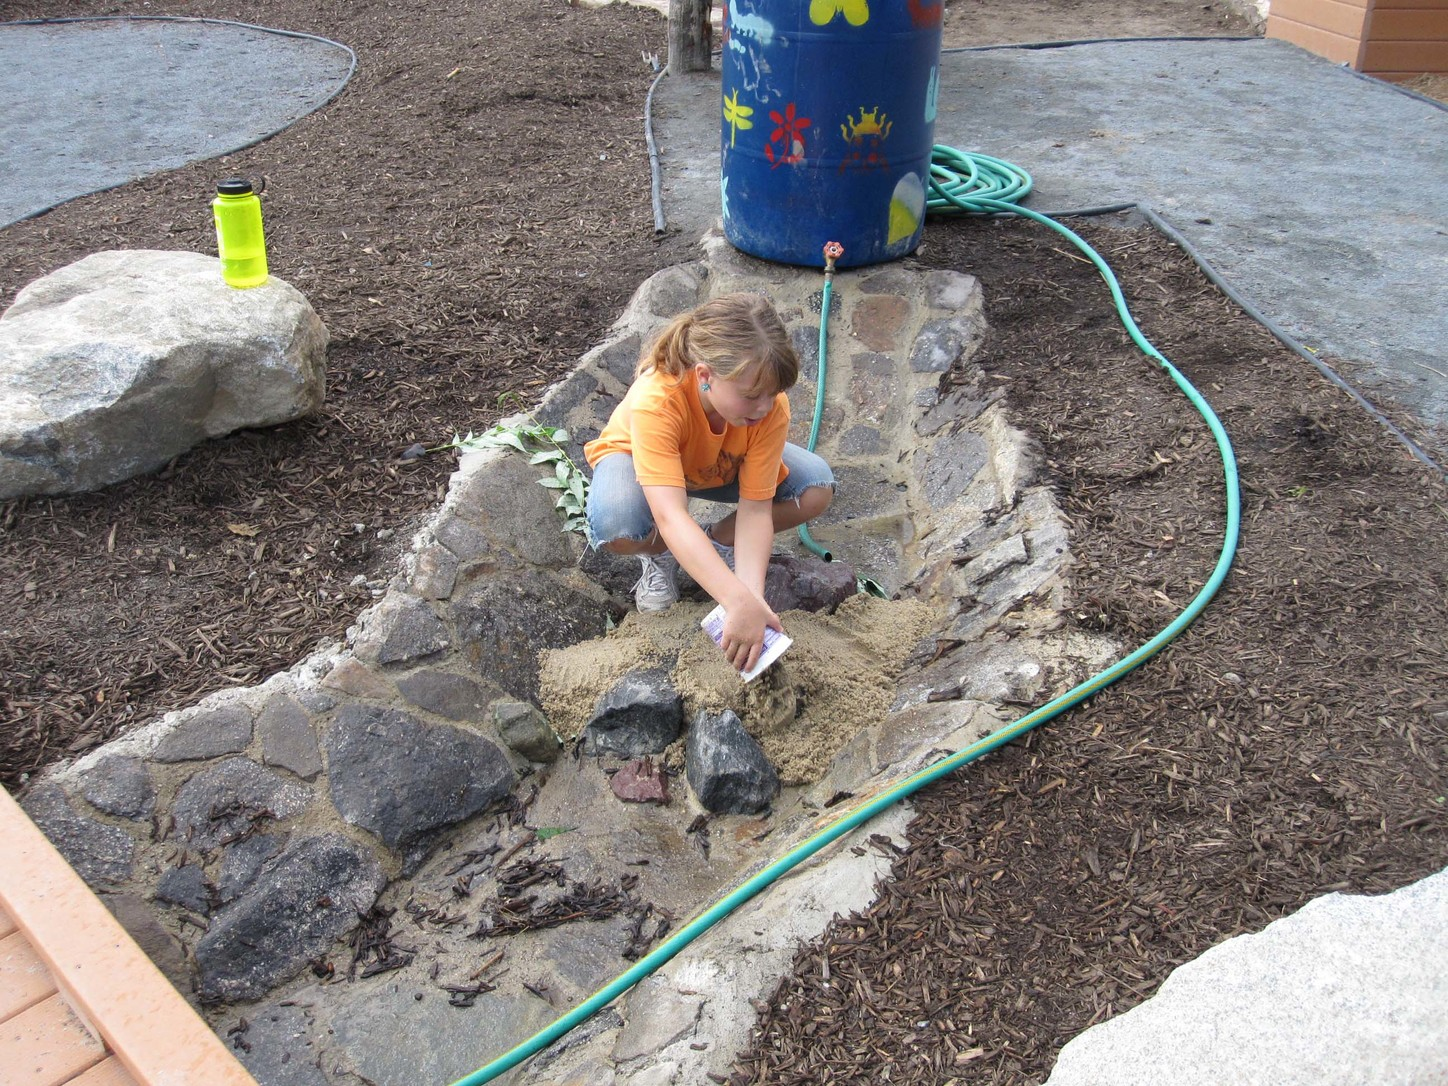 Constructing Sand And Water Play Areas Learning